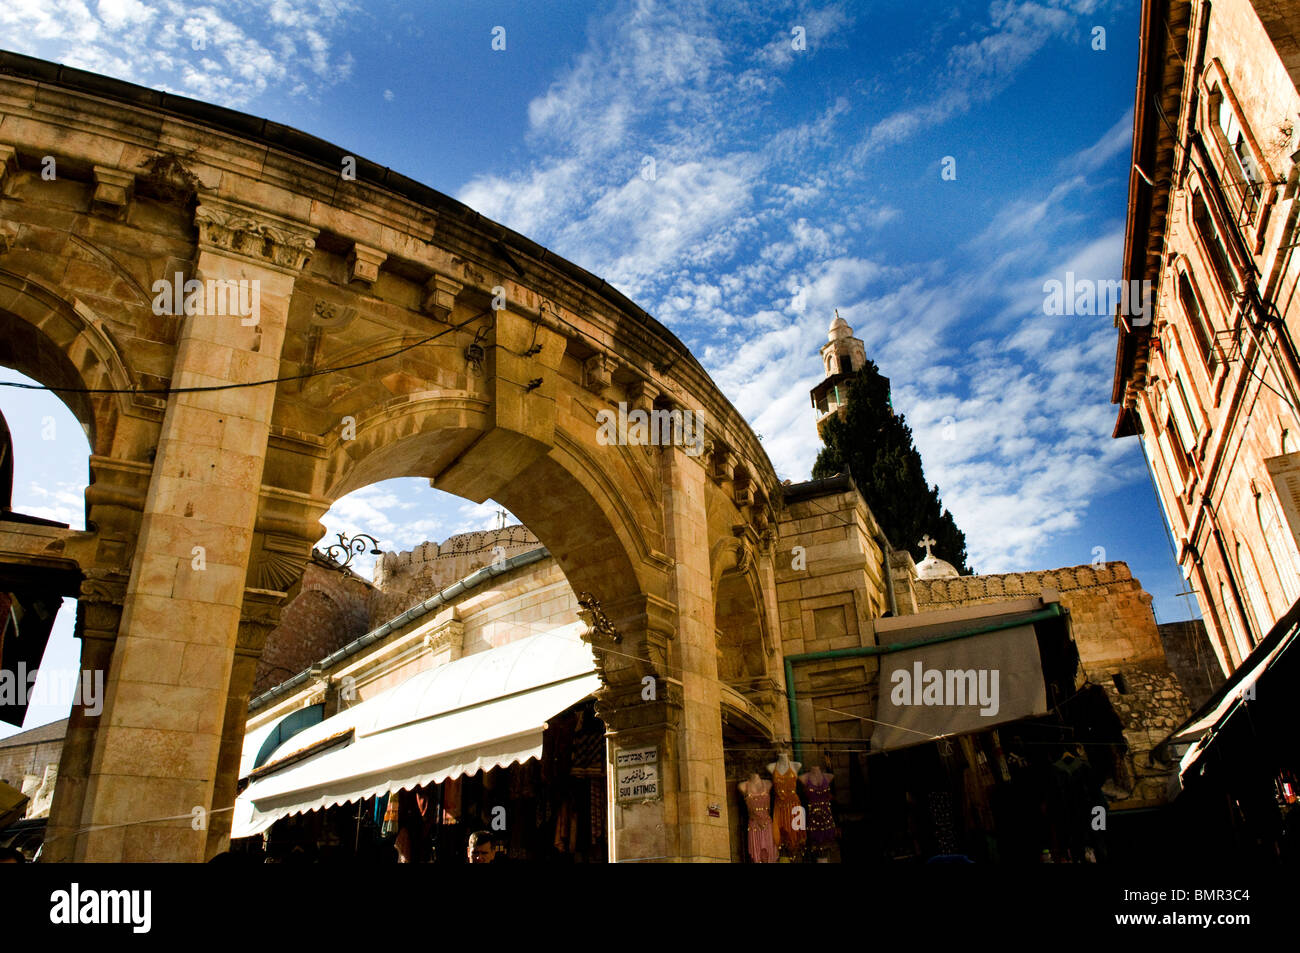 The Muristan in the Christian qt. in the old city of Jerusalem. - Stock Image